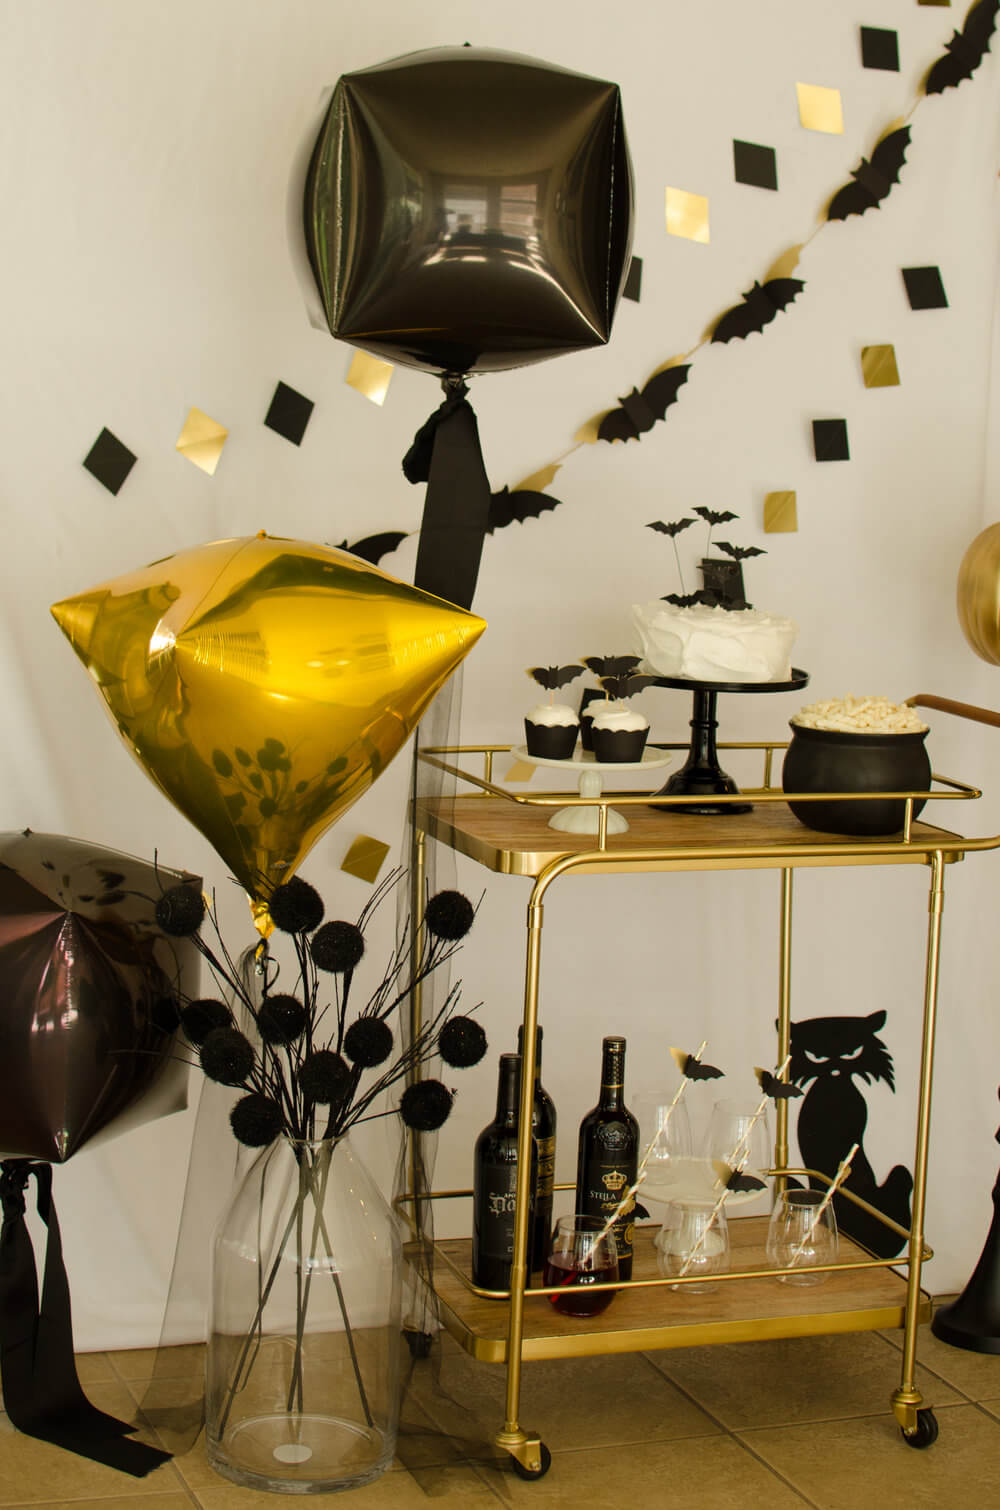 Halloween Bar Cart Styling Tips: Include a bat garland with a diamond shaped garland and even gold and black balloons in different shapes to fill in the space. Instead of flowers, use spooky black twigs with black pom poms in an oversize glass vase. Click to see more from this Bar Cart styled by party stylist Carolina of Mint Event Design. #partyideas #partyinspiration #halloween #barcart #barcartdecor #partystyling